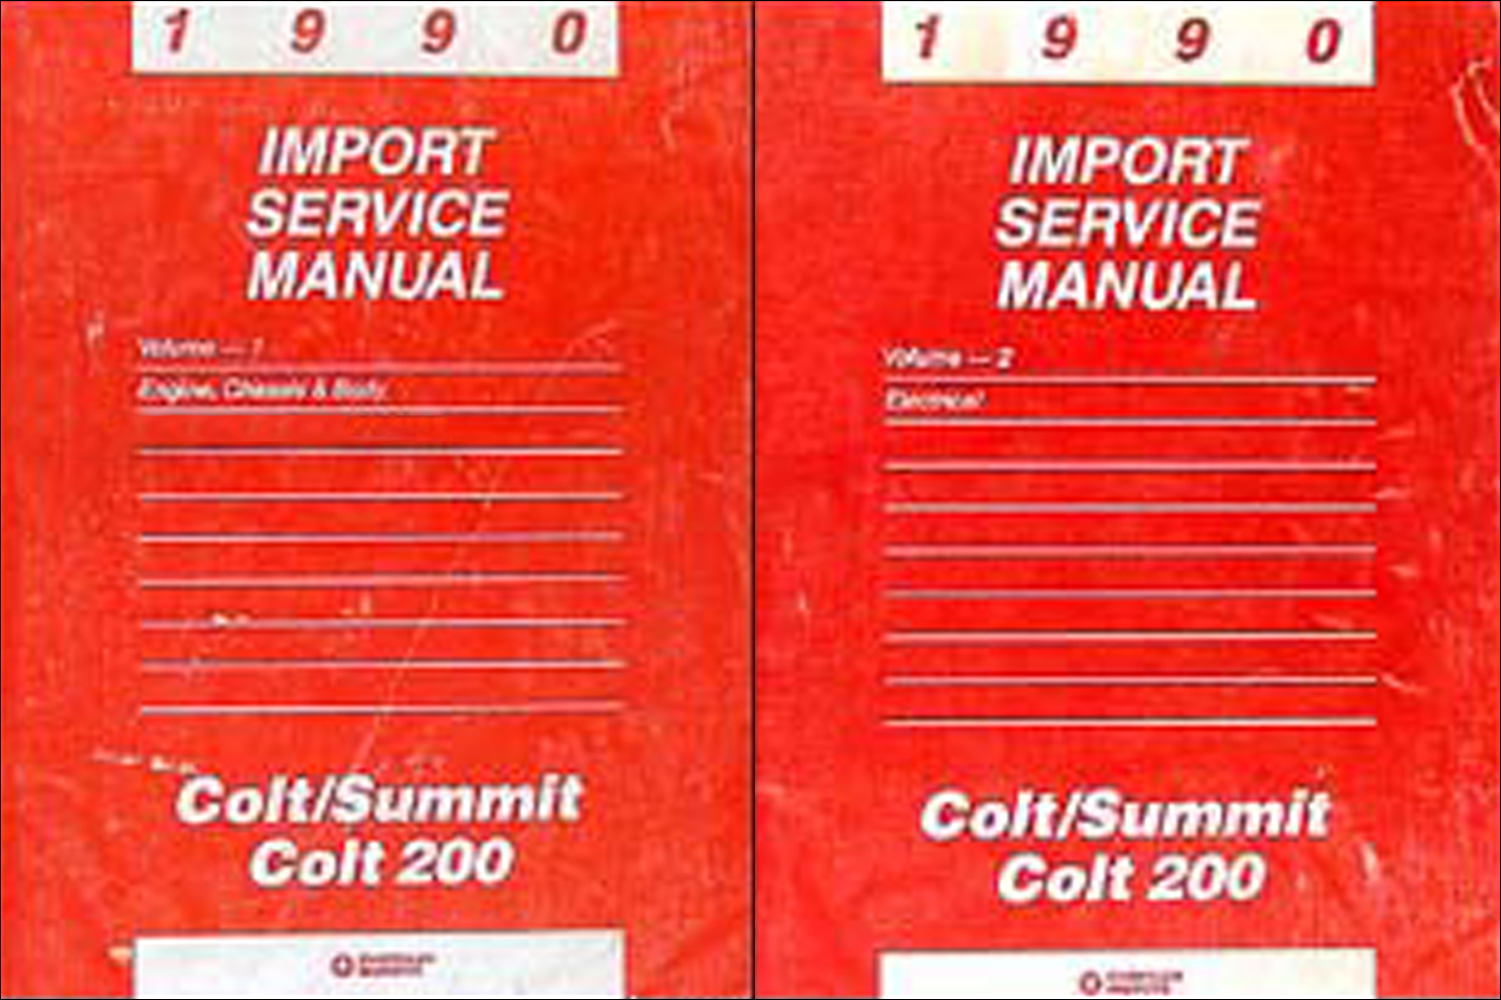 1990 Colt, 200, & Summit Shop Manual Original 2 Volume Set